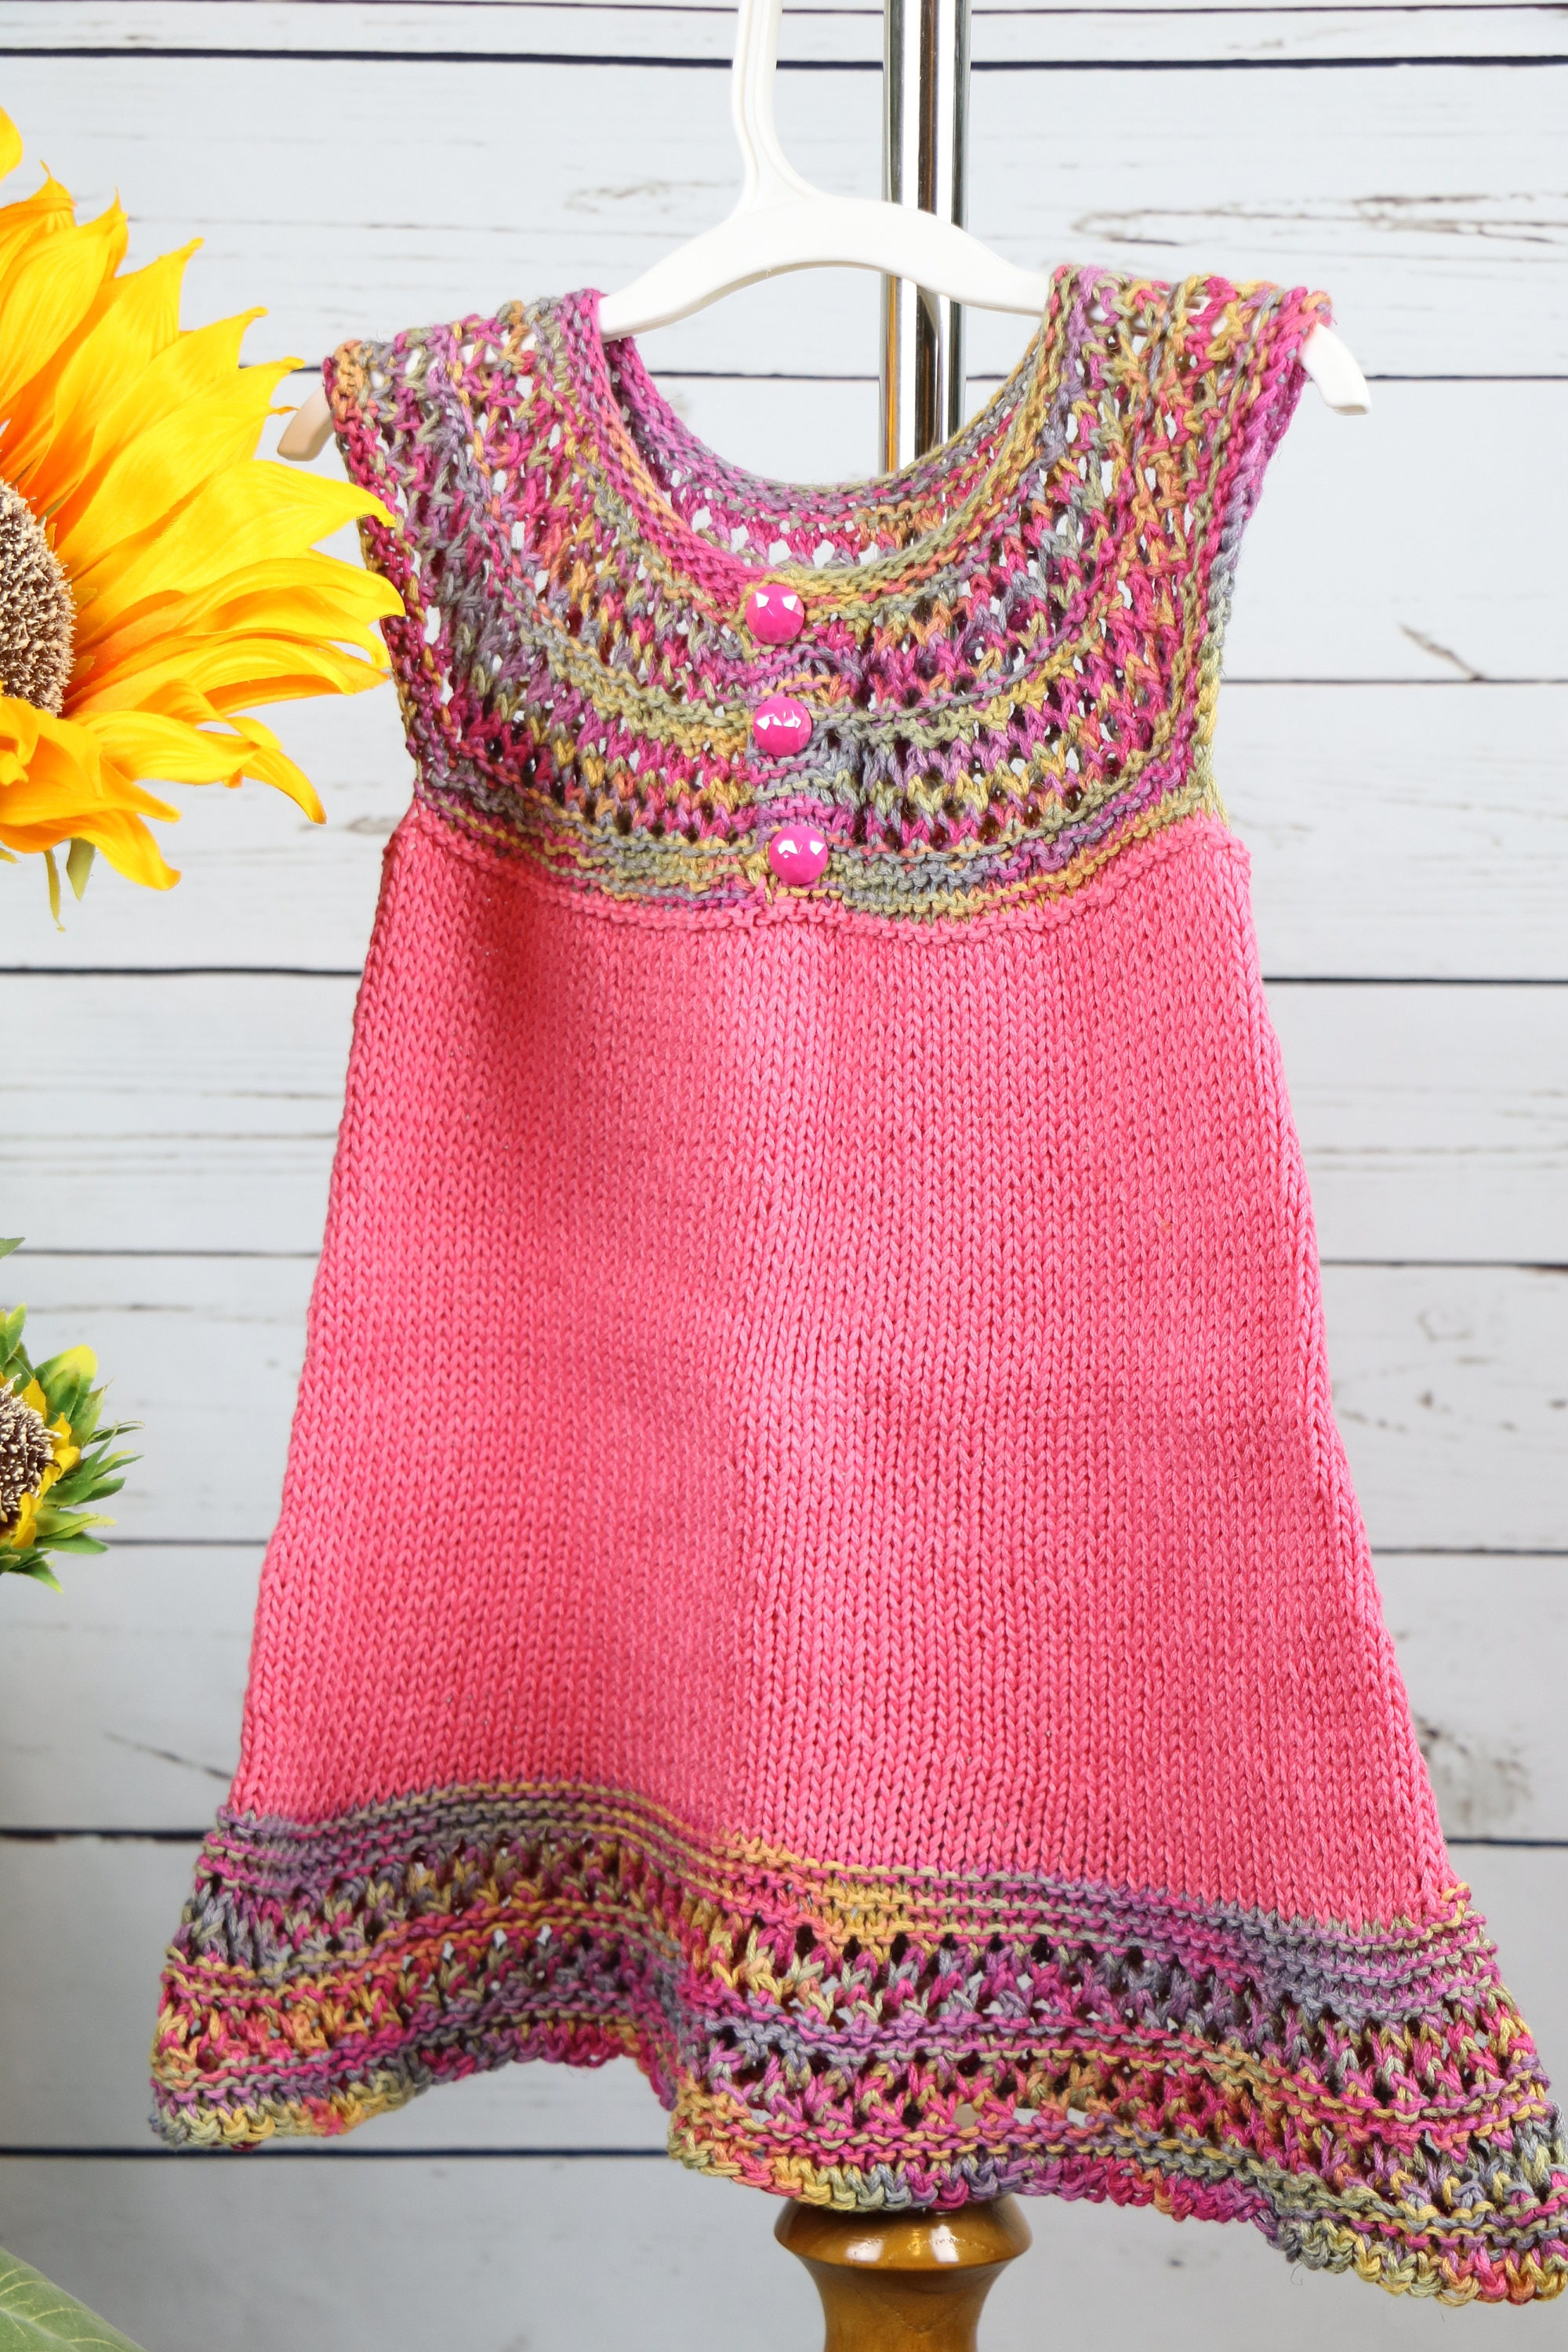 Bright pink toddler cotton dress colorful summer dress little girl bright pink toddler cotton dress colorful summer dress little girl dress mightylinksfo